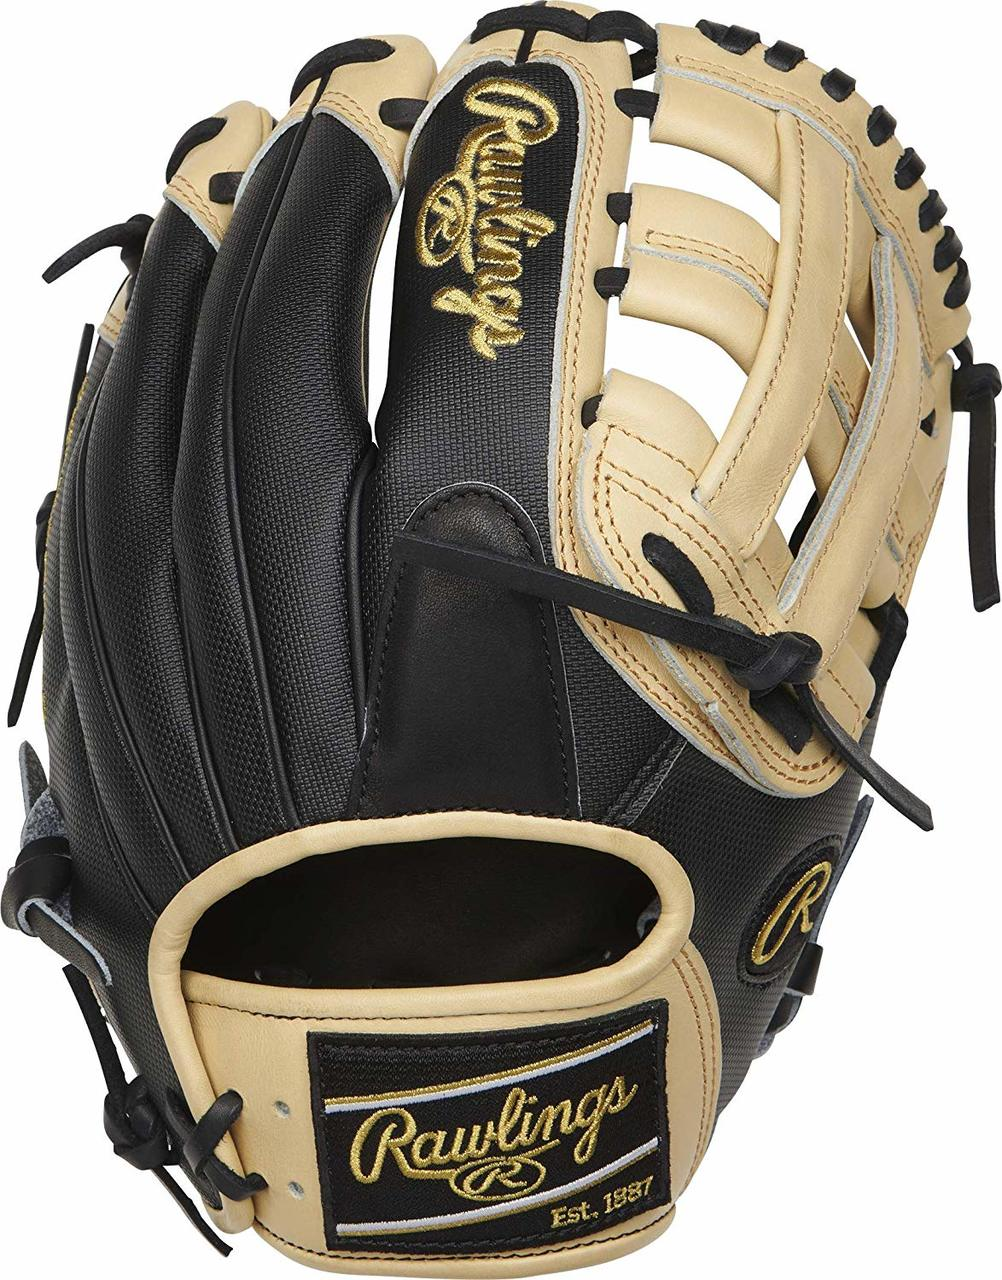 rawlings-heart-of-the-hide-205-6bcss-baseball-glove-11-75-right-hand-throw PRO205-6BCSS-RightHandThrow Rawlings 083321598739 This Rawlings Heart of the Hide 11.75-inch H-web glove comes in